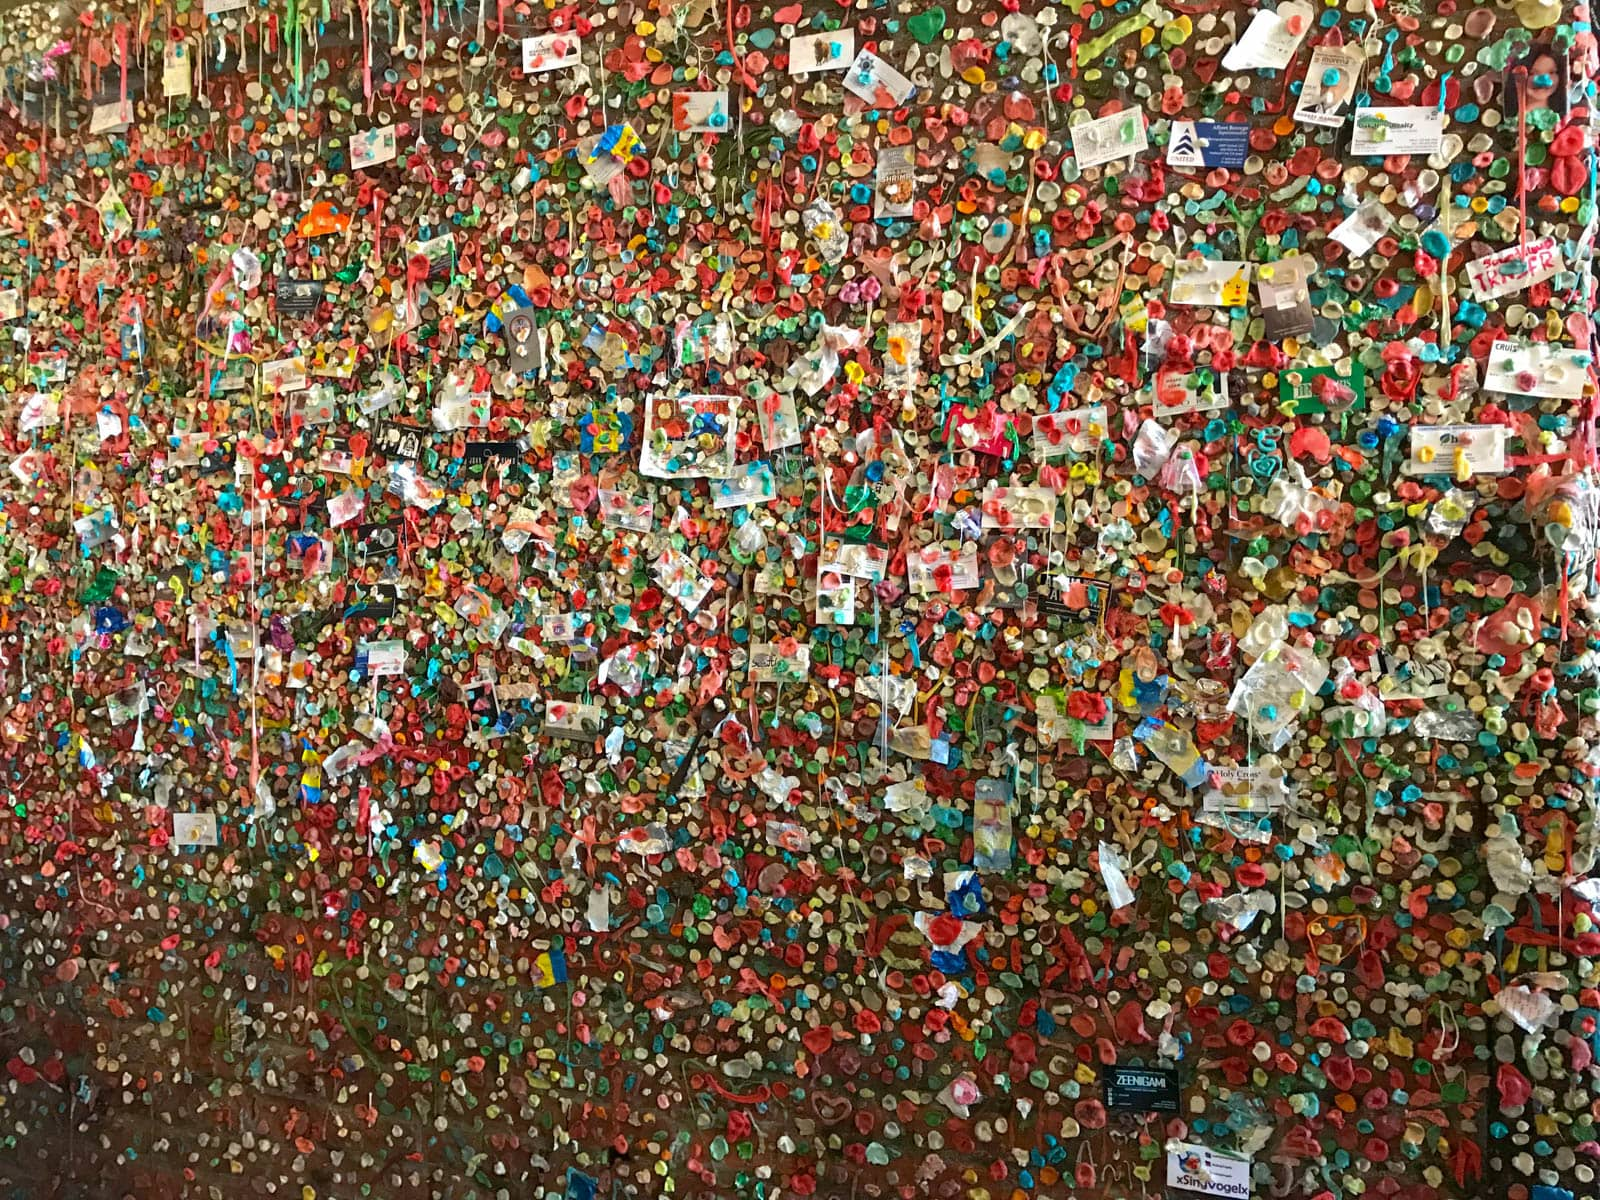 A brick wall littered with various pieces of paper, some resembling business cards and photographs, stuck to the wall with an infinite amount of small pieces of brightly coloured, masticated chewing gum.